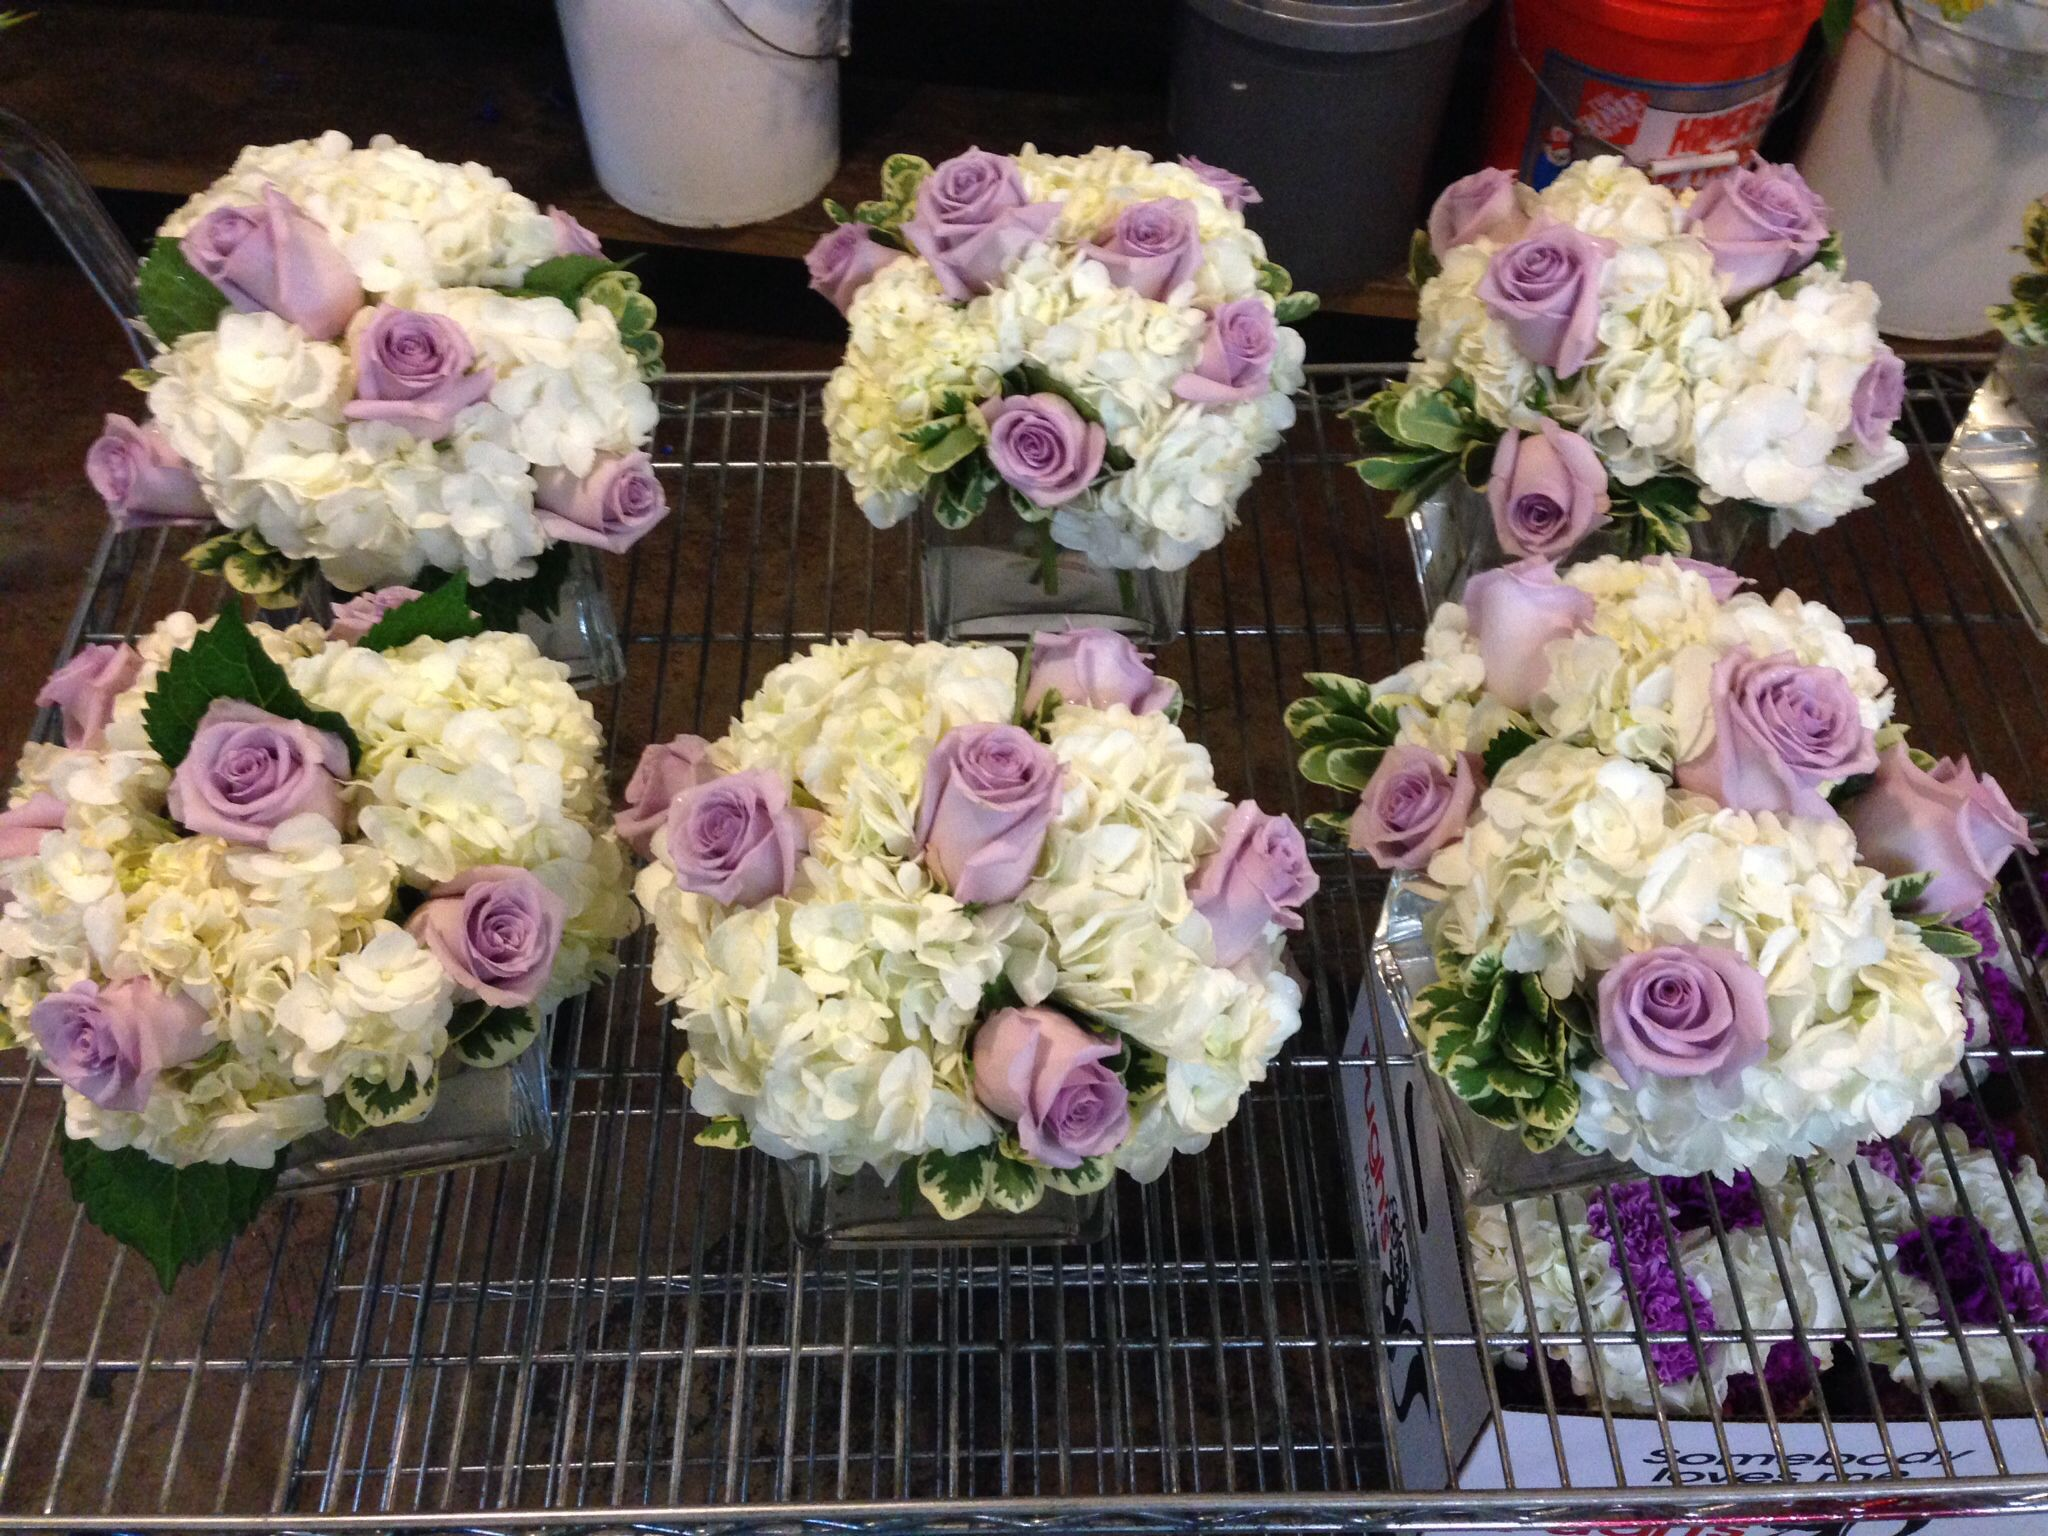 Centerpiece Dining Tables White Hydrangea Lavender Roses Clear